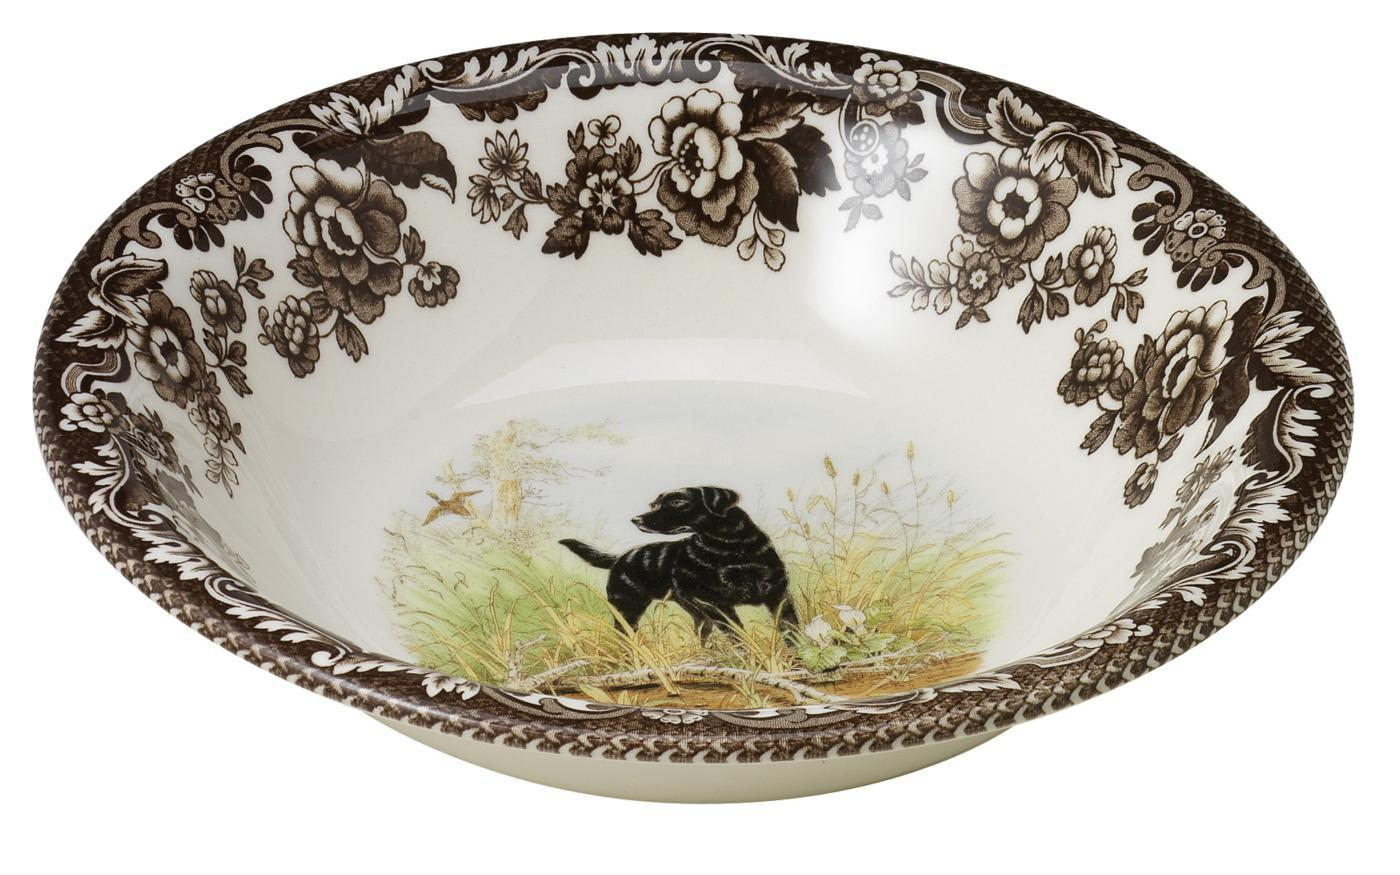 Spode Woodland Ascot Cereal Bowl 8 Inch (Black Labrador Retriever) image number 0